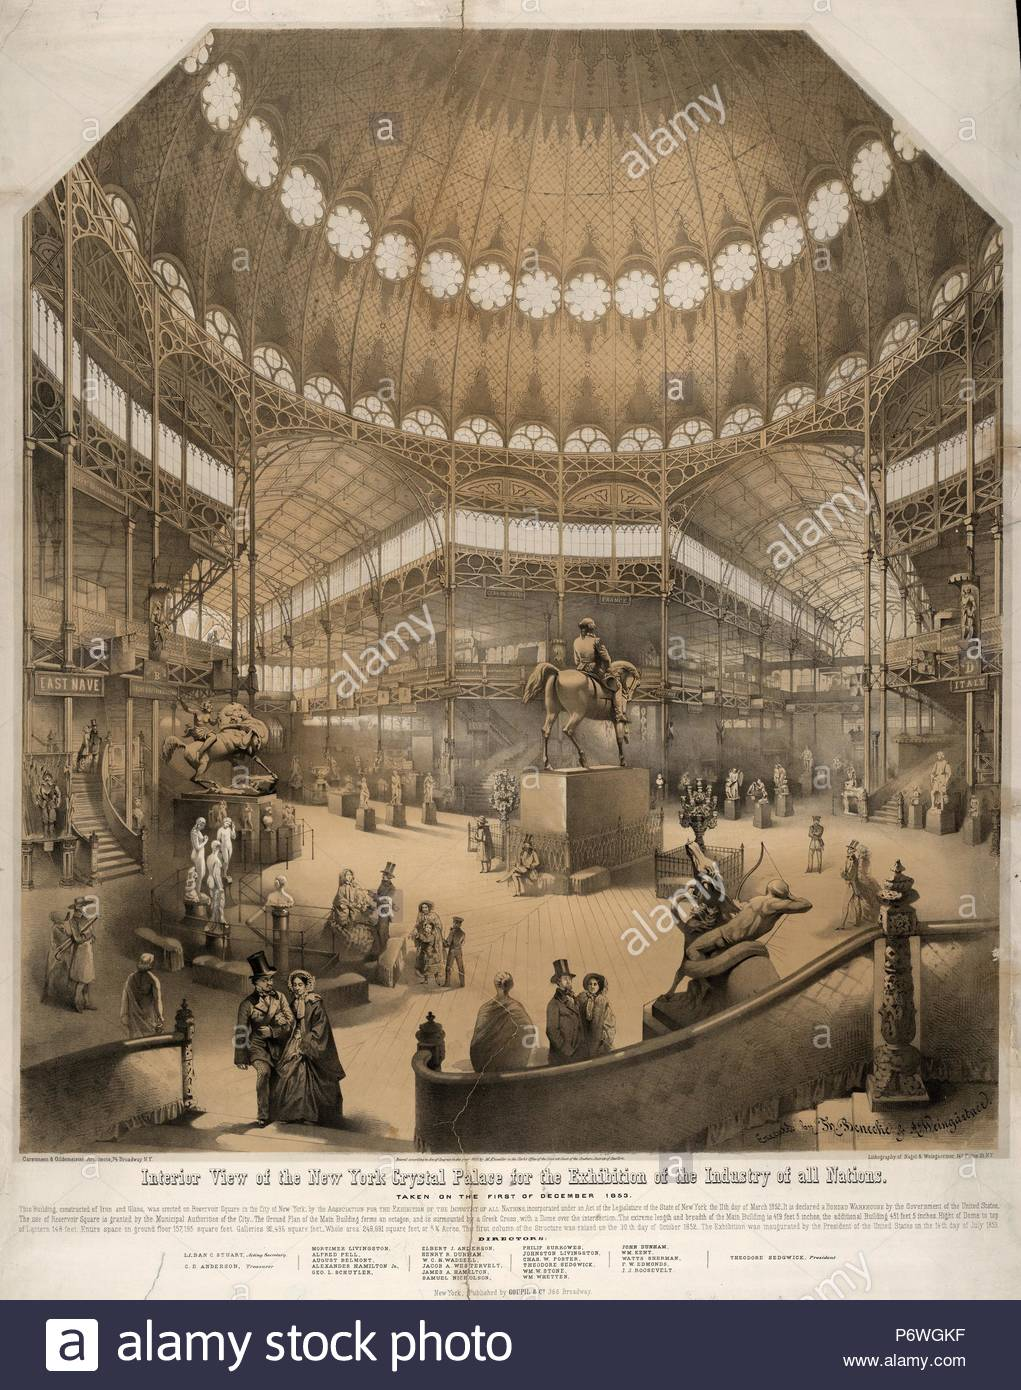 Interior view of the New York Crystal Palace for the exhibition of the industry of all nations; Nagel & Weingärtner, printmaker; New York : Goupil & Co., c1853.; 1 print : lithograph with 2 tint stones ; 40 1/8 x 29 3/4 in. - Stock Image